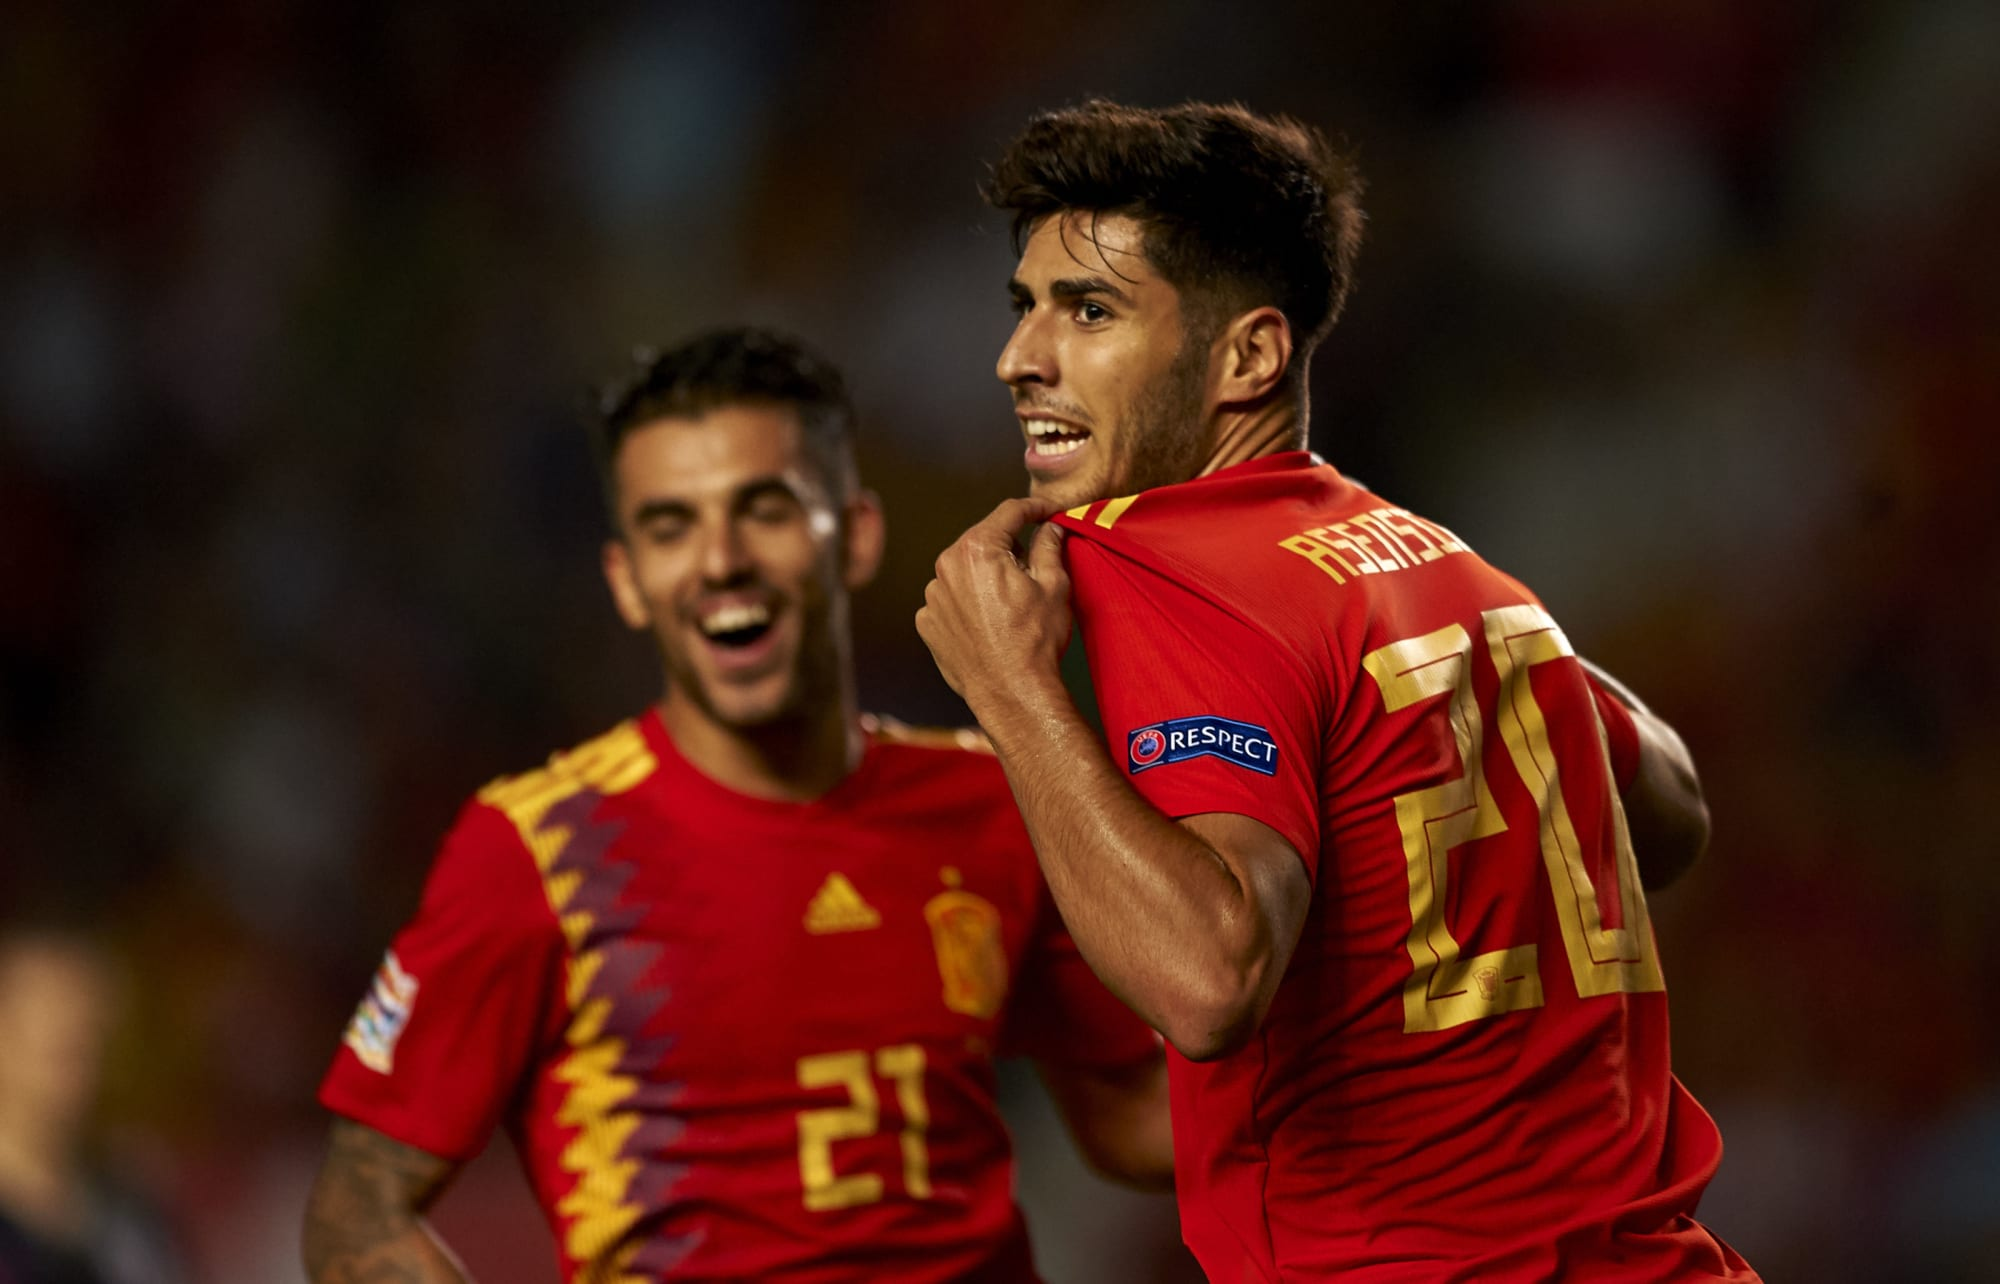 Real Madrid's Marco Asensio is off to an incredible start ...